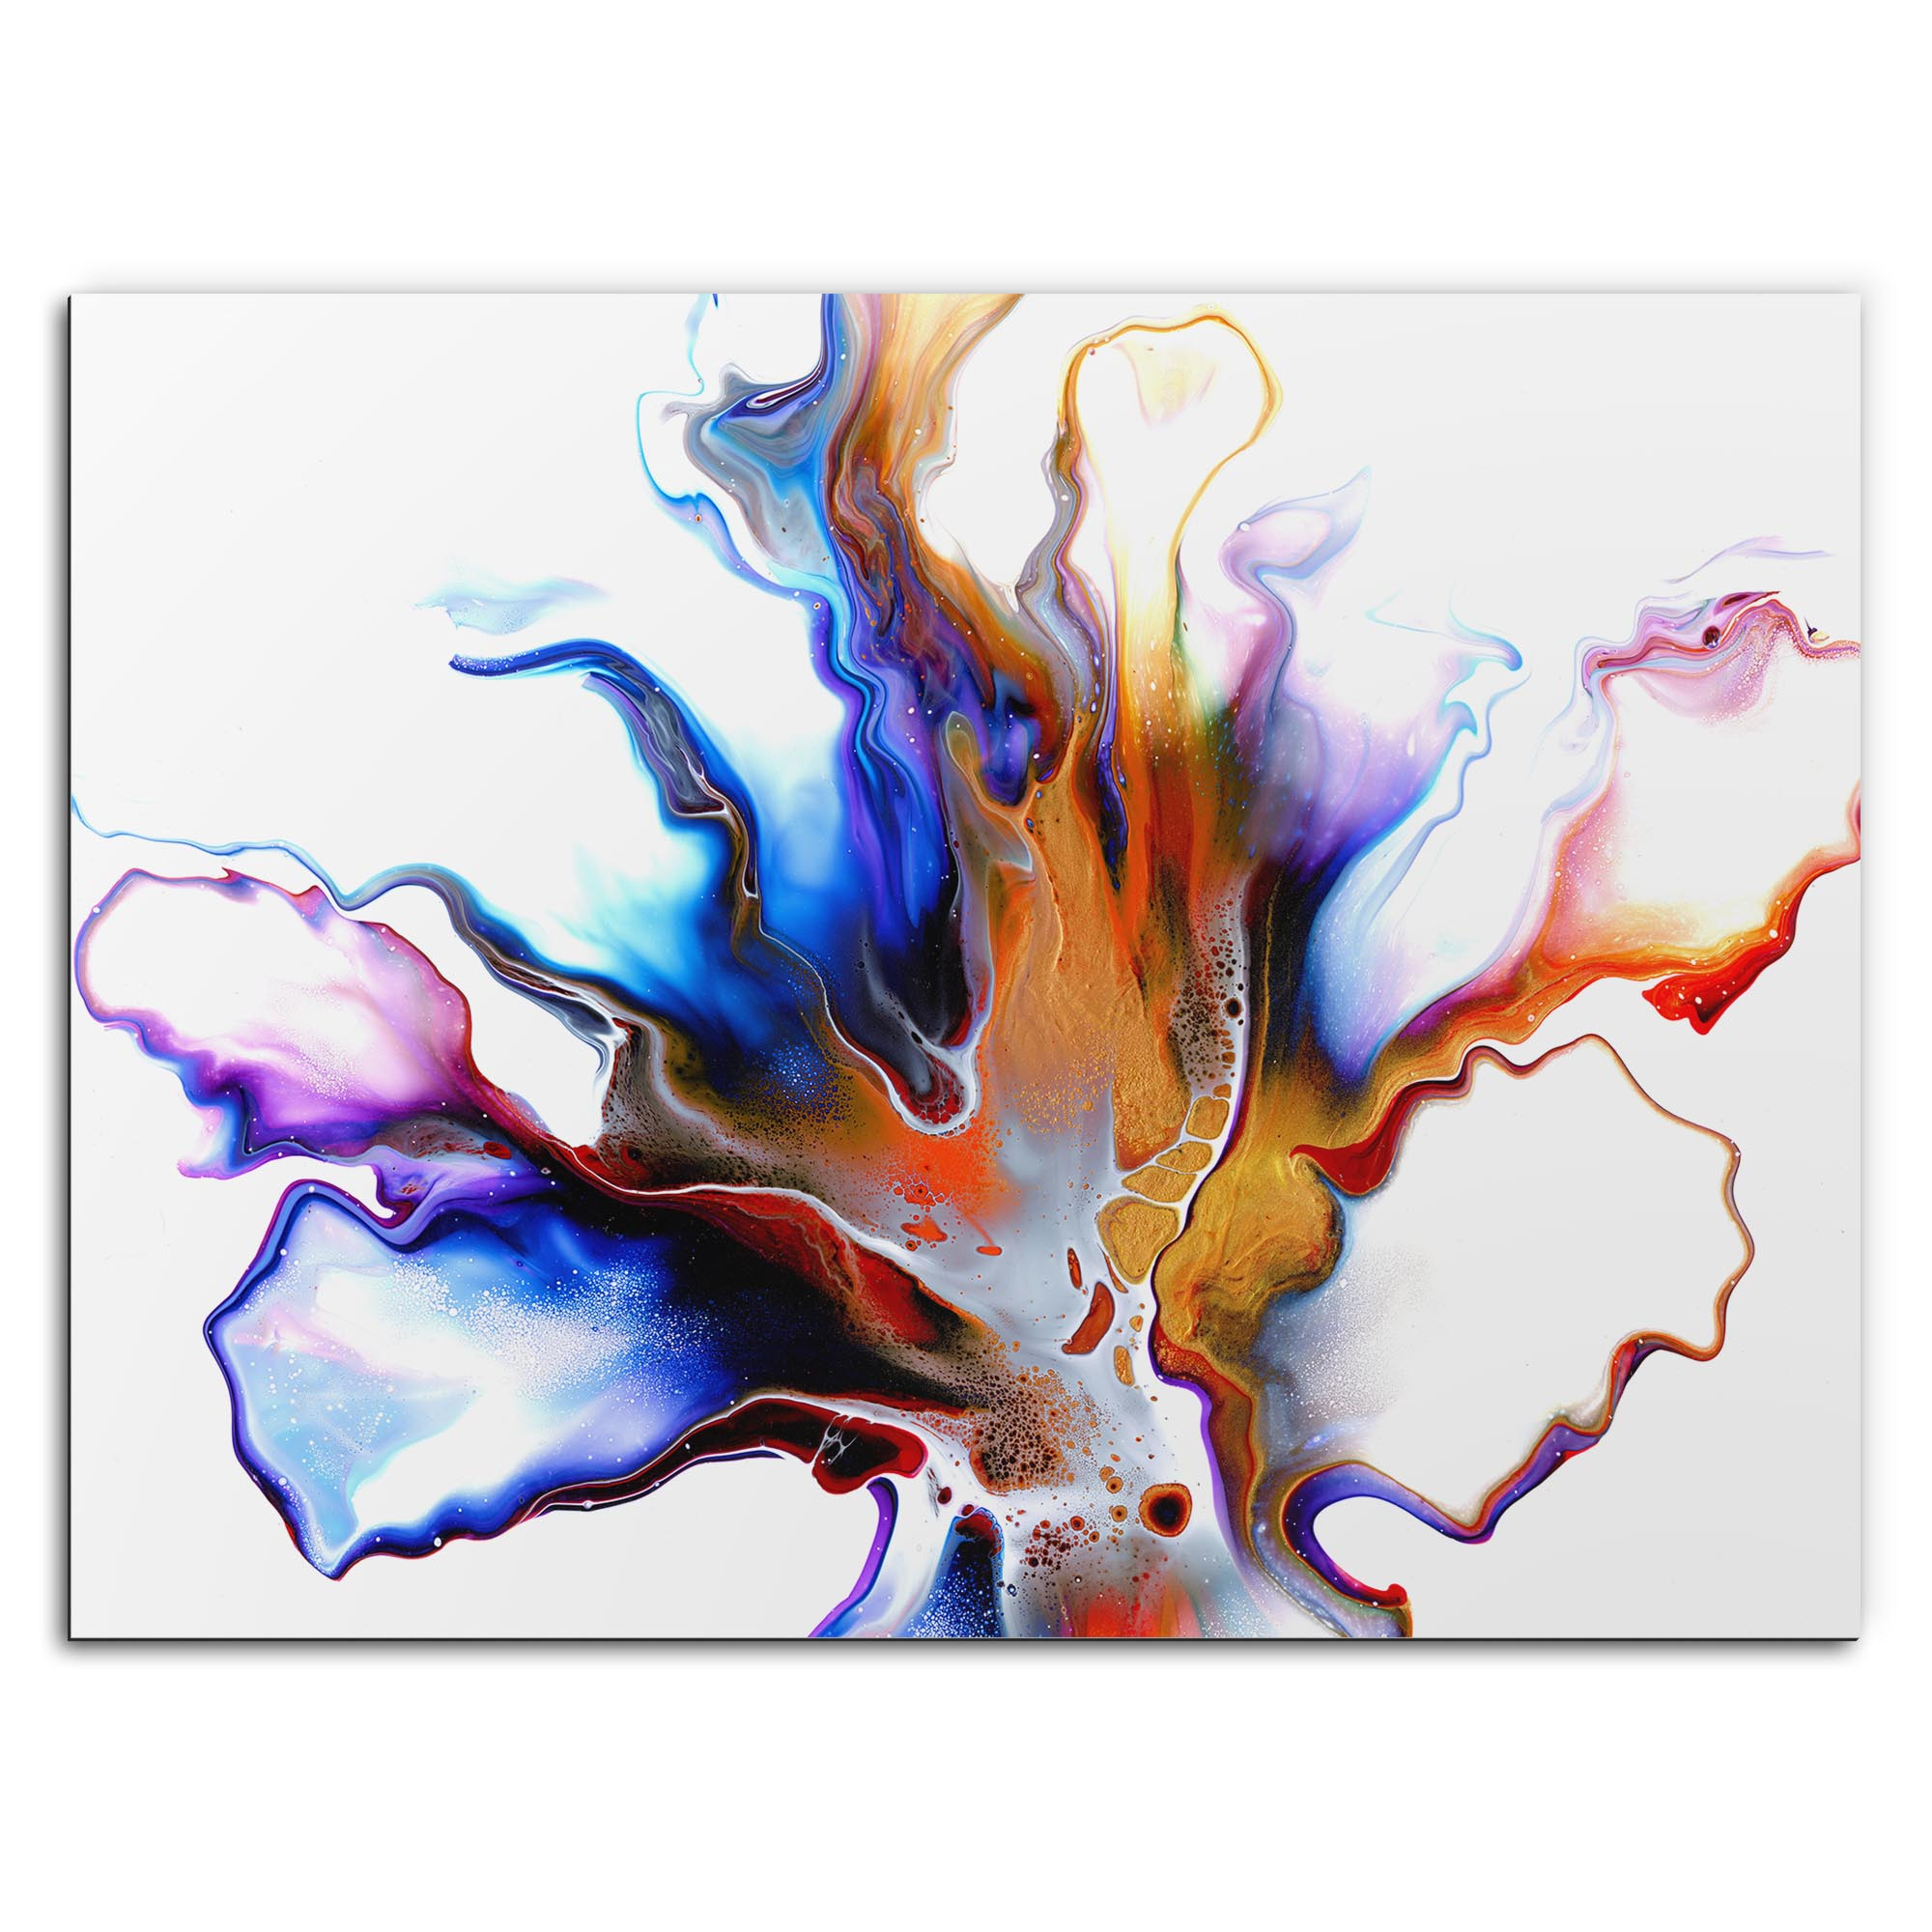 Elana Reiter 'Eruption' 32in x 24in Contemporary Style Abstract Wall Art